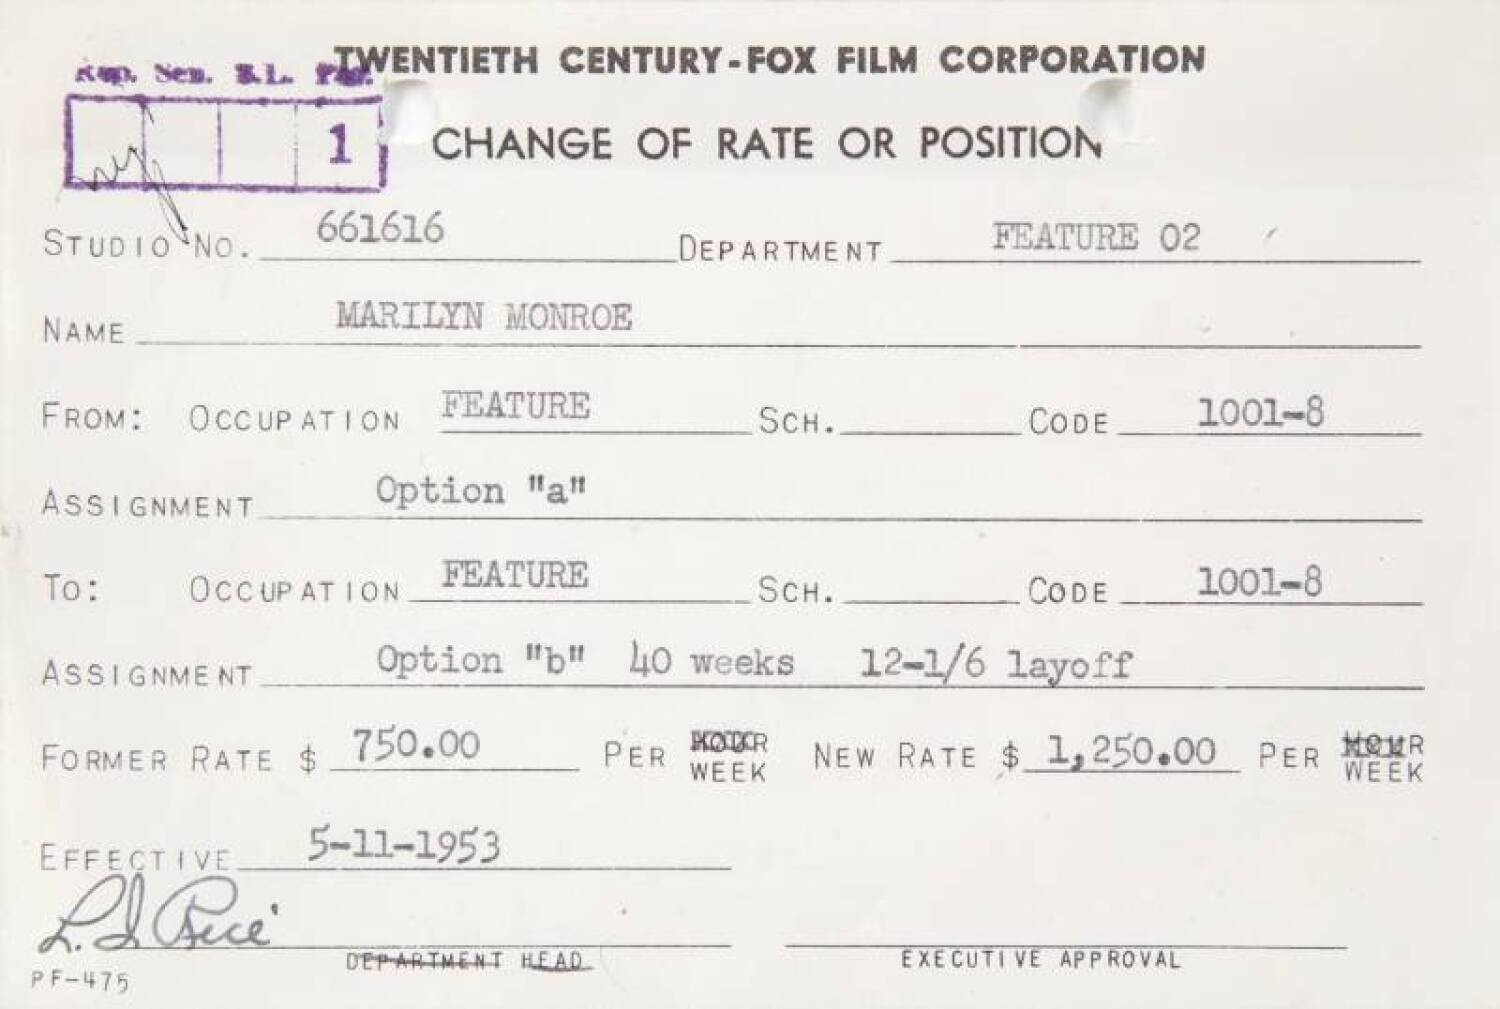 MARILYN MONROE CHANGE OF RATE CARD FROM 20TH CENTURY FOX - Current